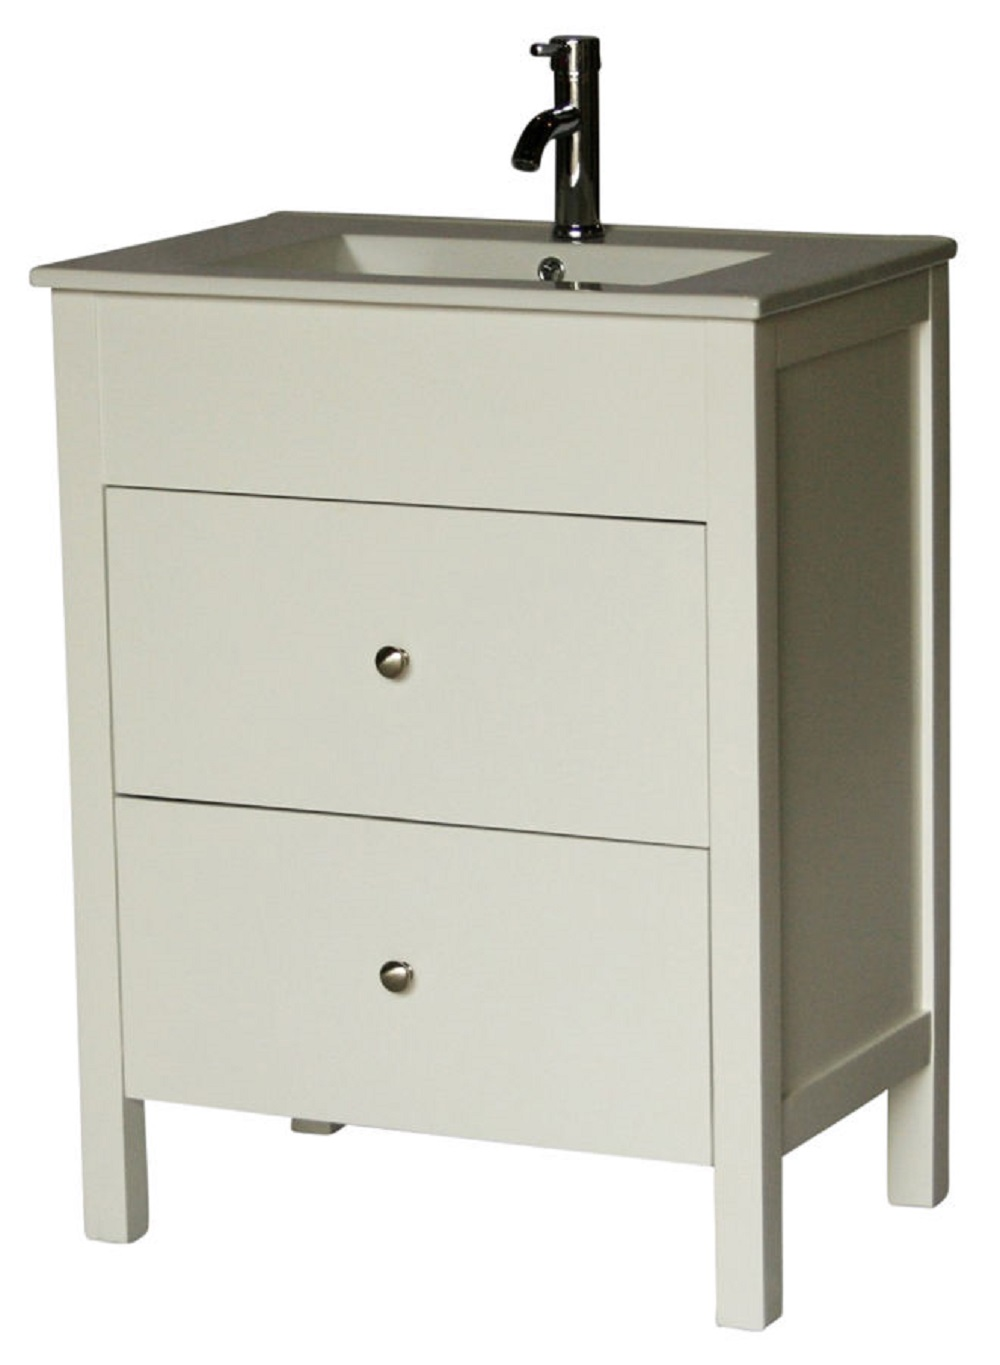 28 Inch 18 Inch Deep Bathroom Vanity Modern Style White Color 28 Wx18 Dx36 H S3022w